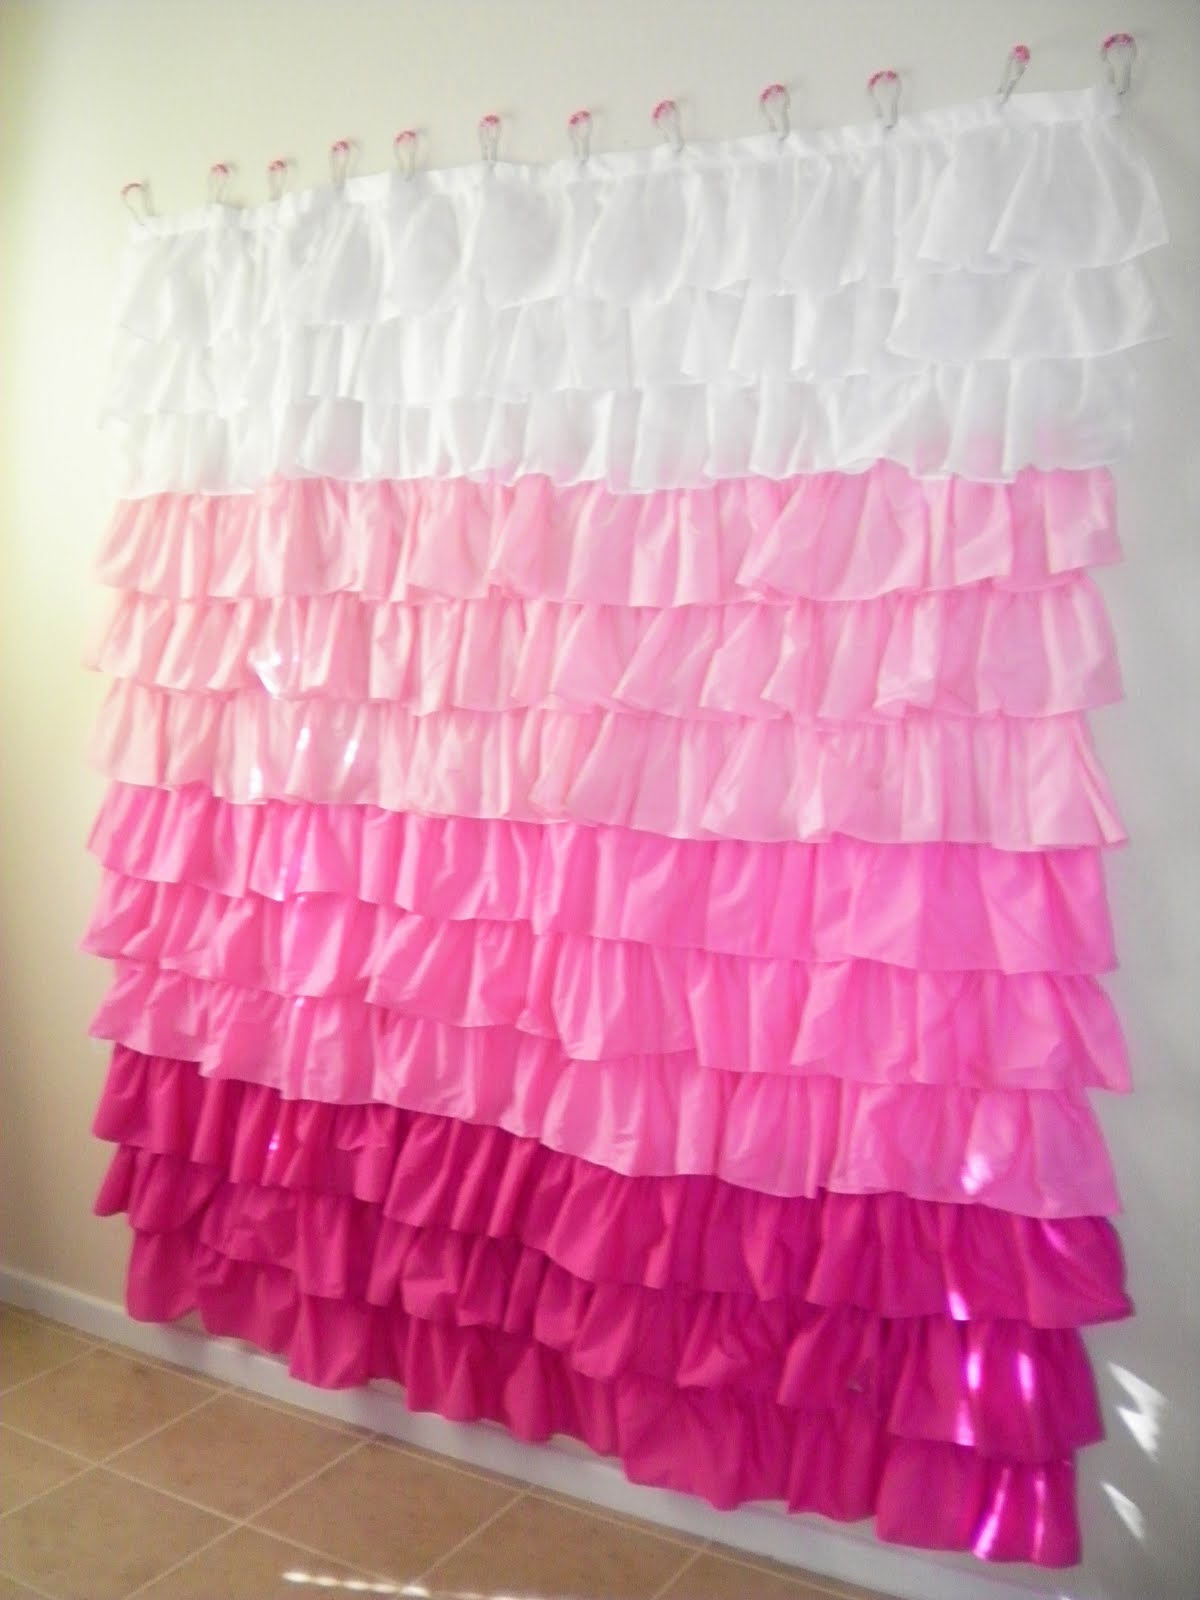 Light pink shower curtain - Justcallmeblessed Oodles Of Ruffles Shower Curtain Ruffle Shower Curtain Pink